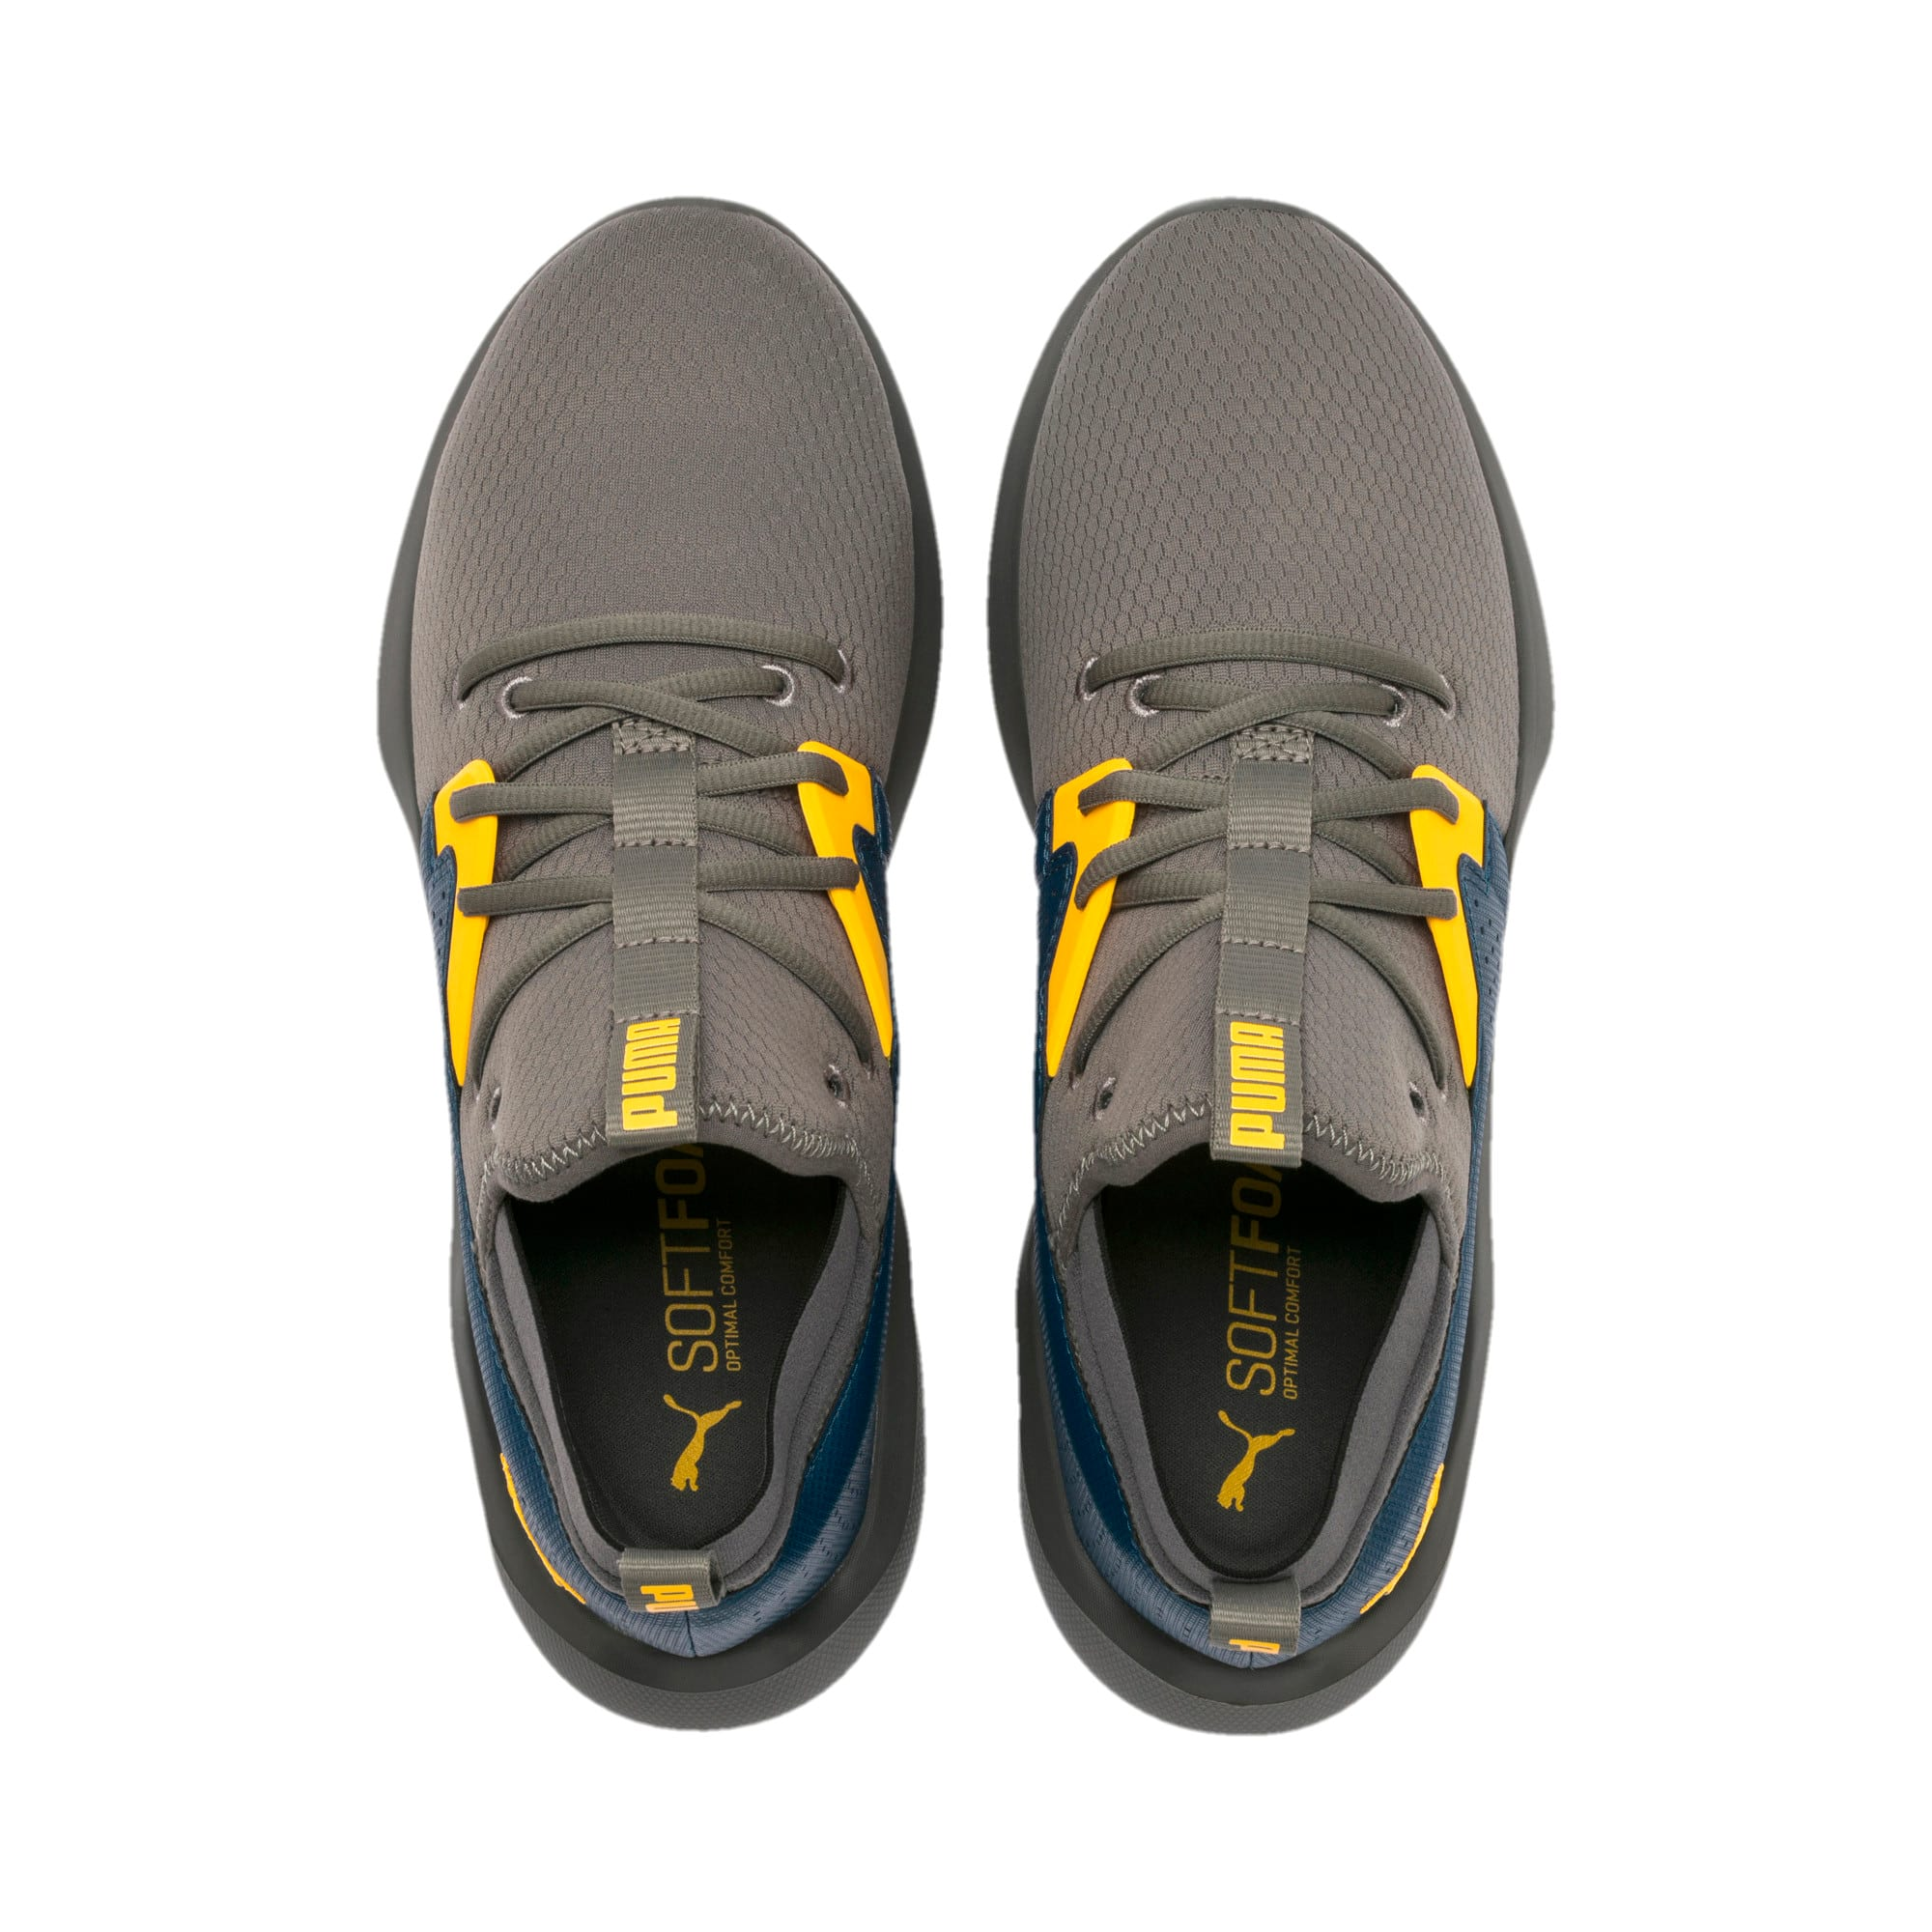 Thumbnail 7 of Emergence Hex Men's Training Shoes, CASTLEROCK-Gibral Sea-Or Alt, medium